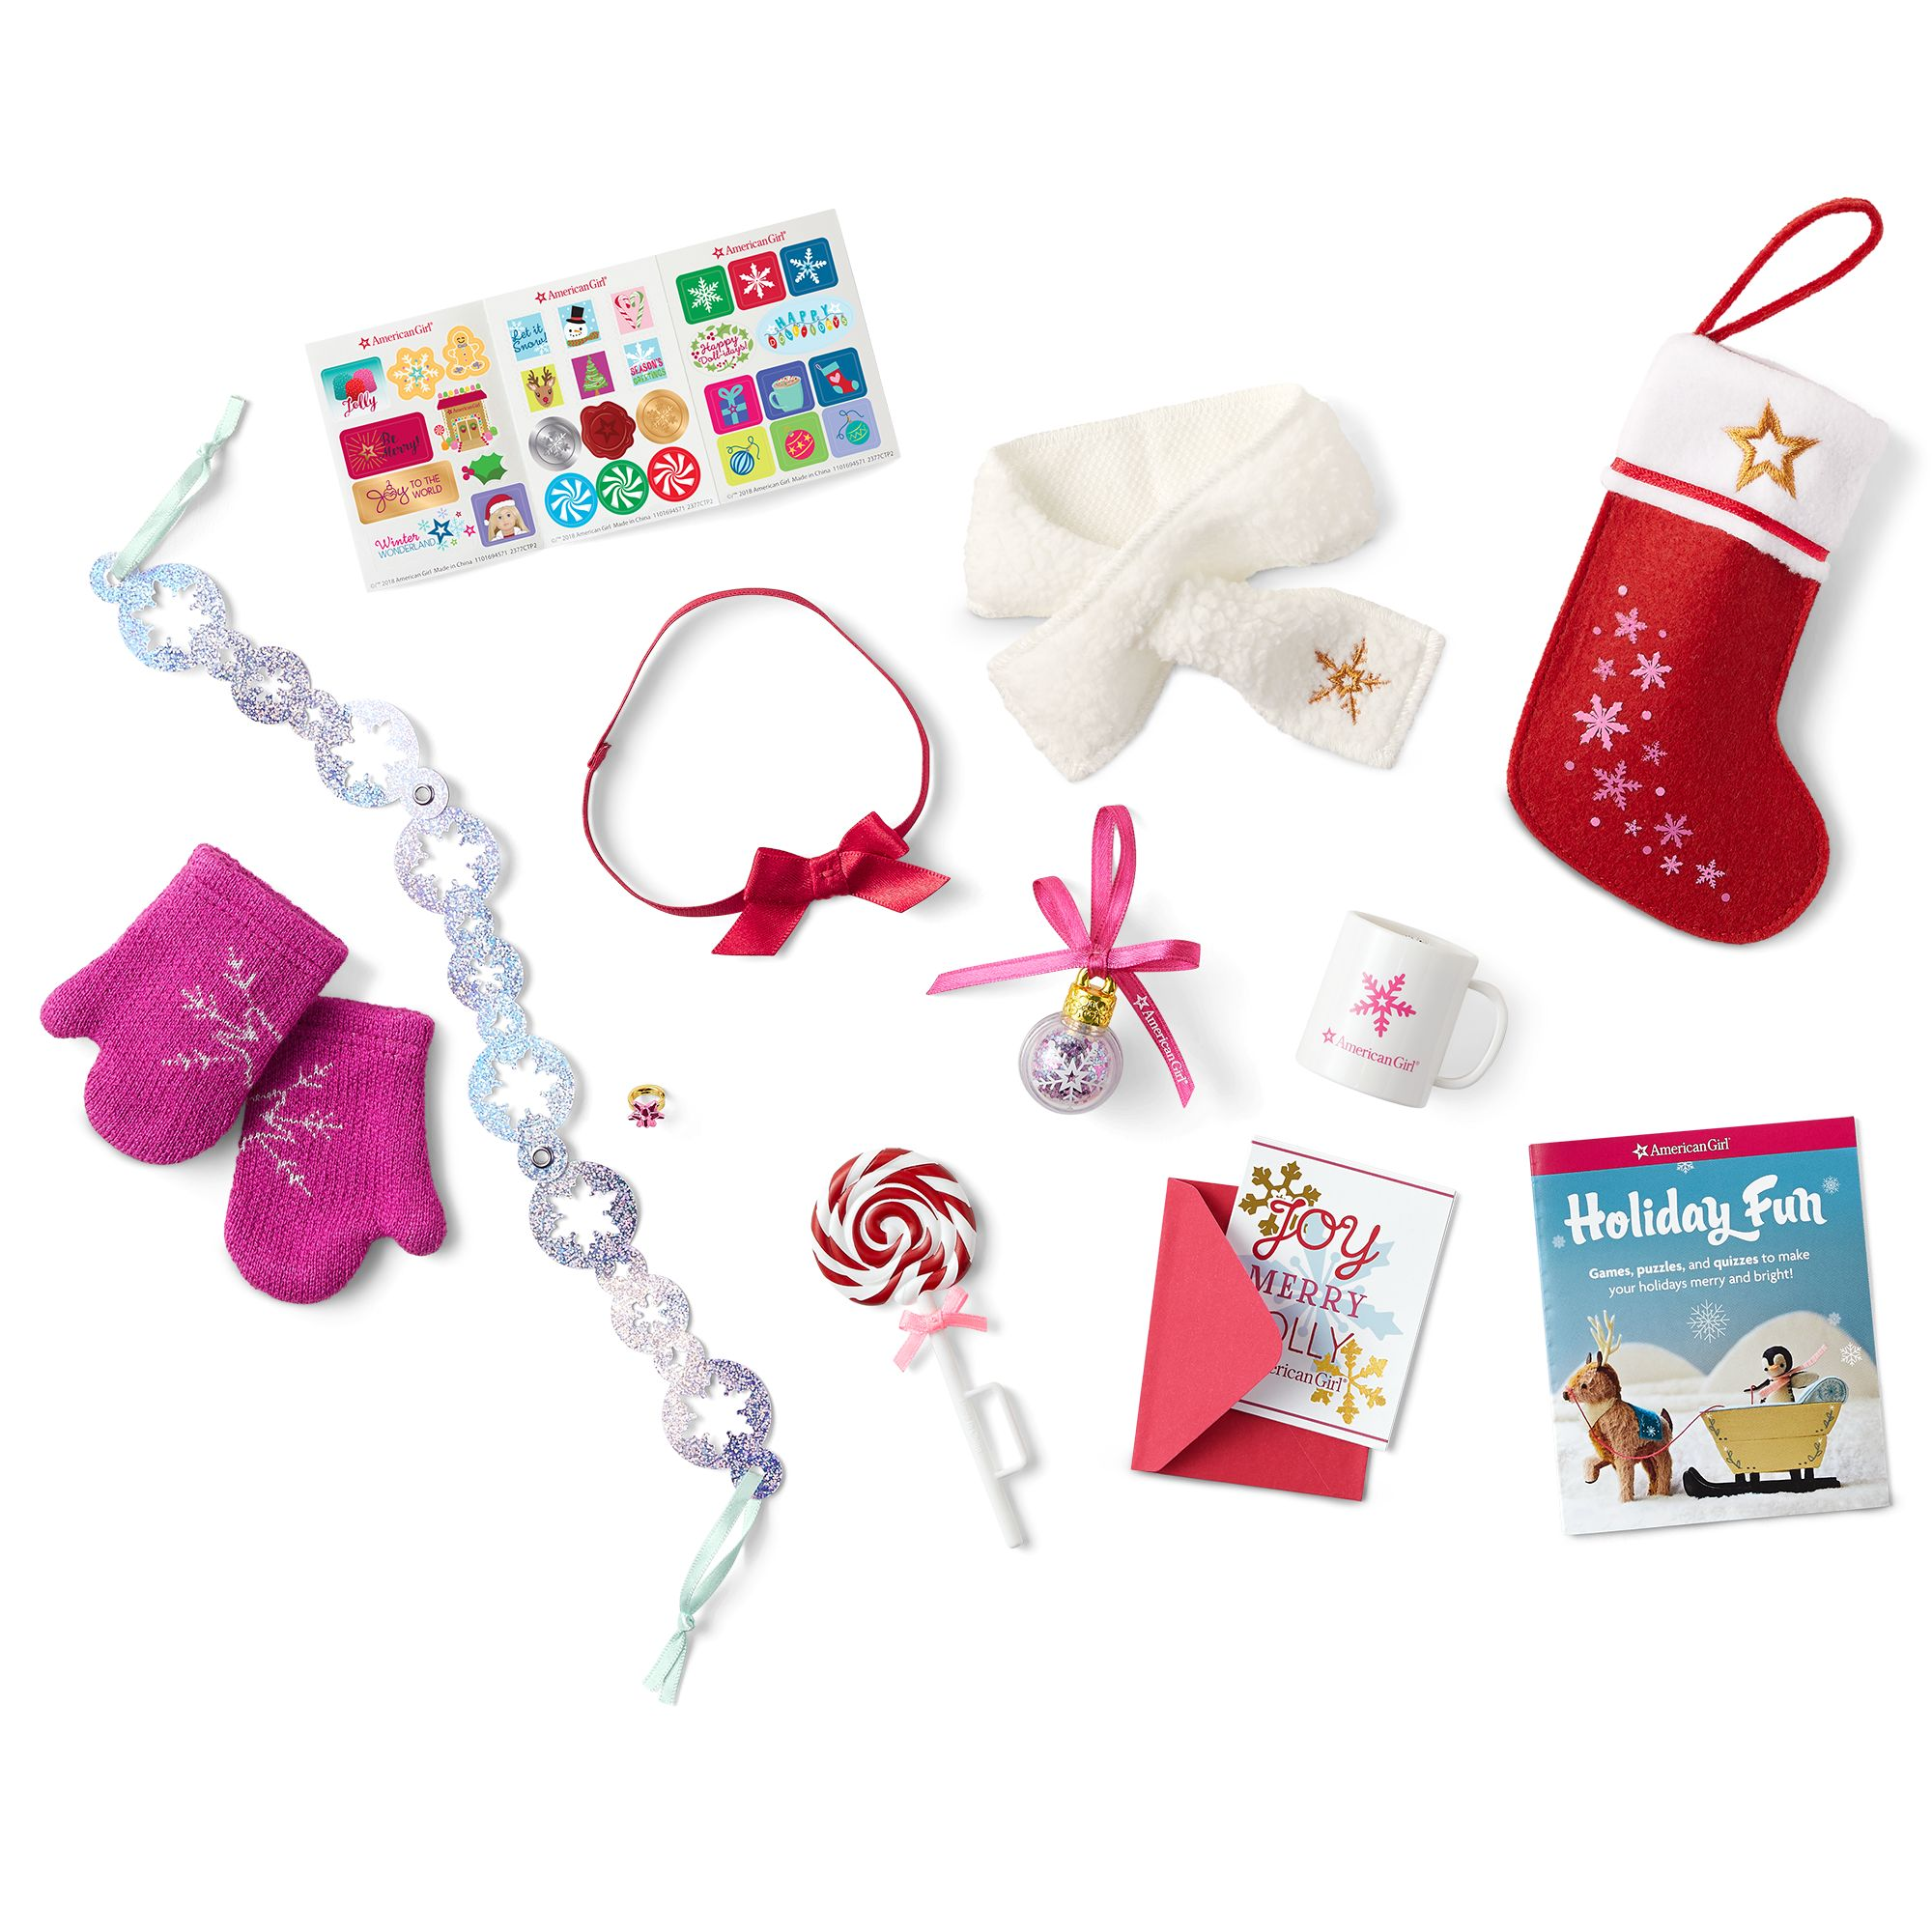 CountdownToChristmasSet contents.jpg